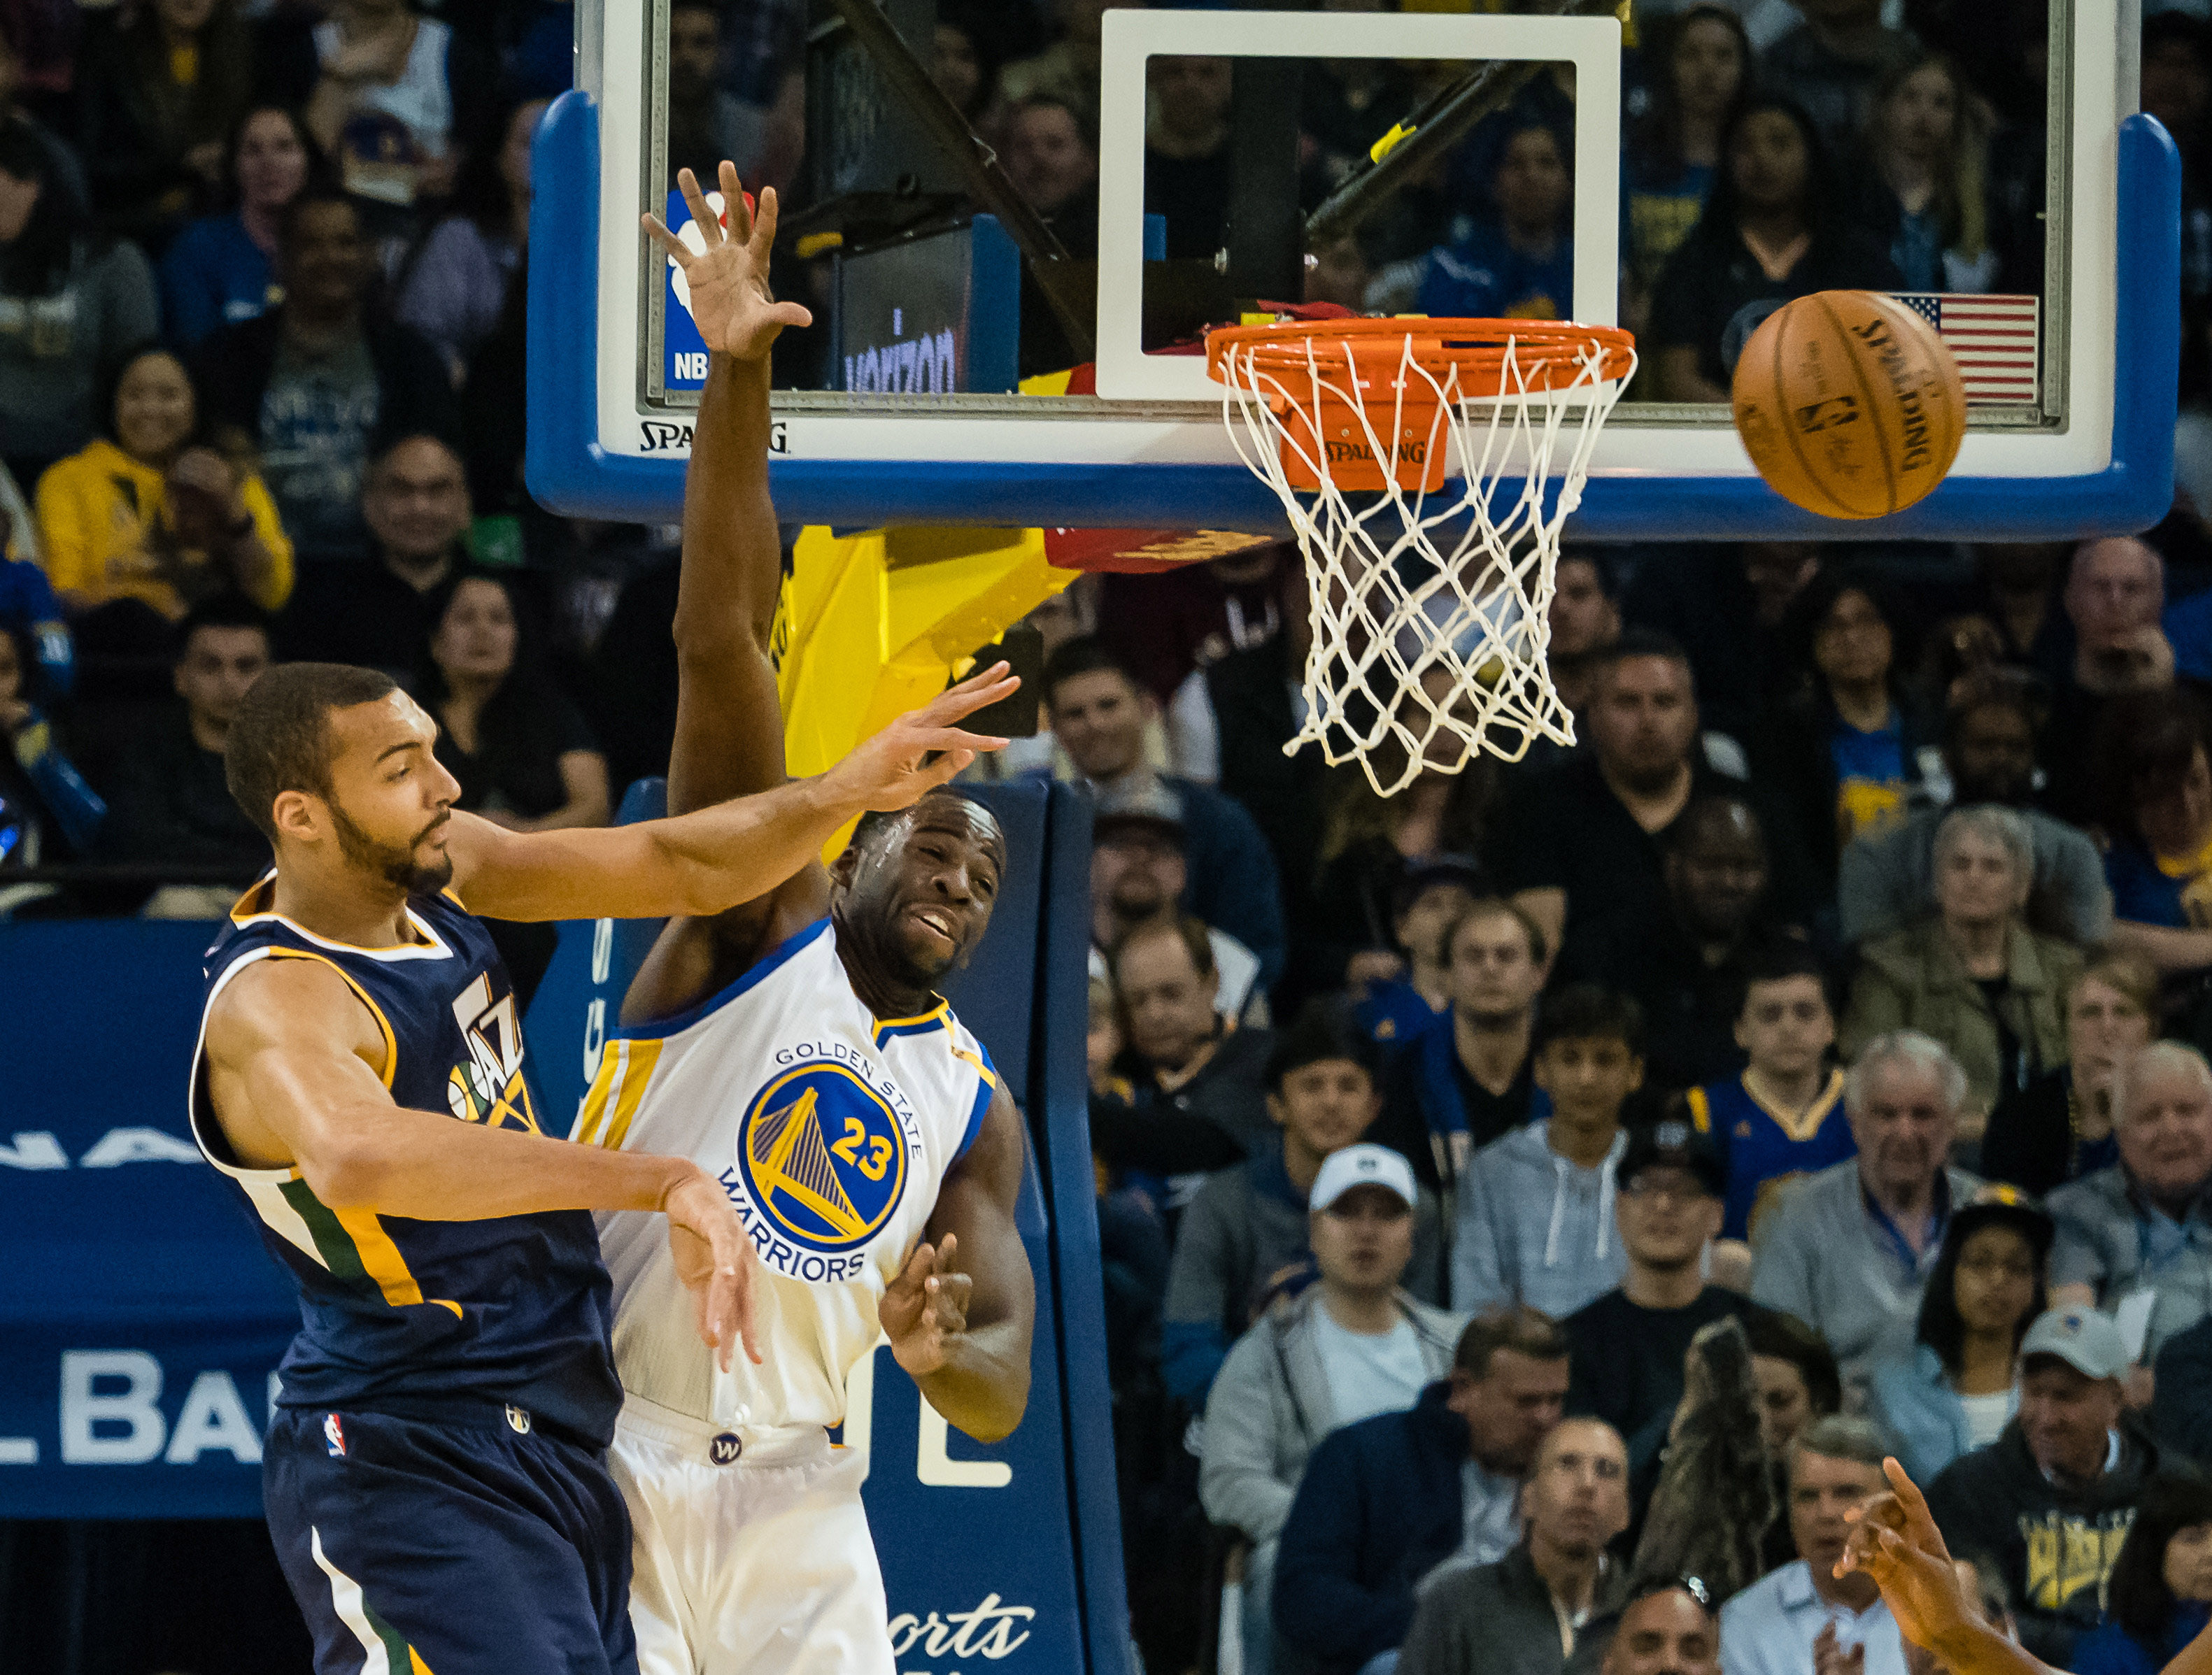 10005528-nba-utah-jazz-at-golden-state-warriors